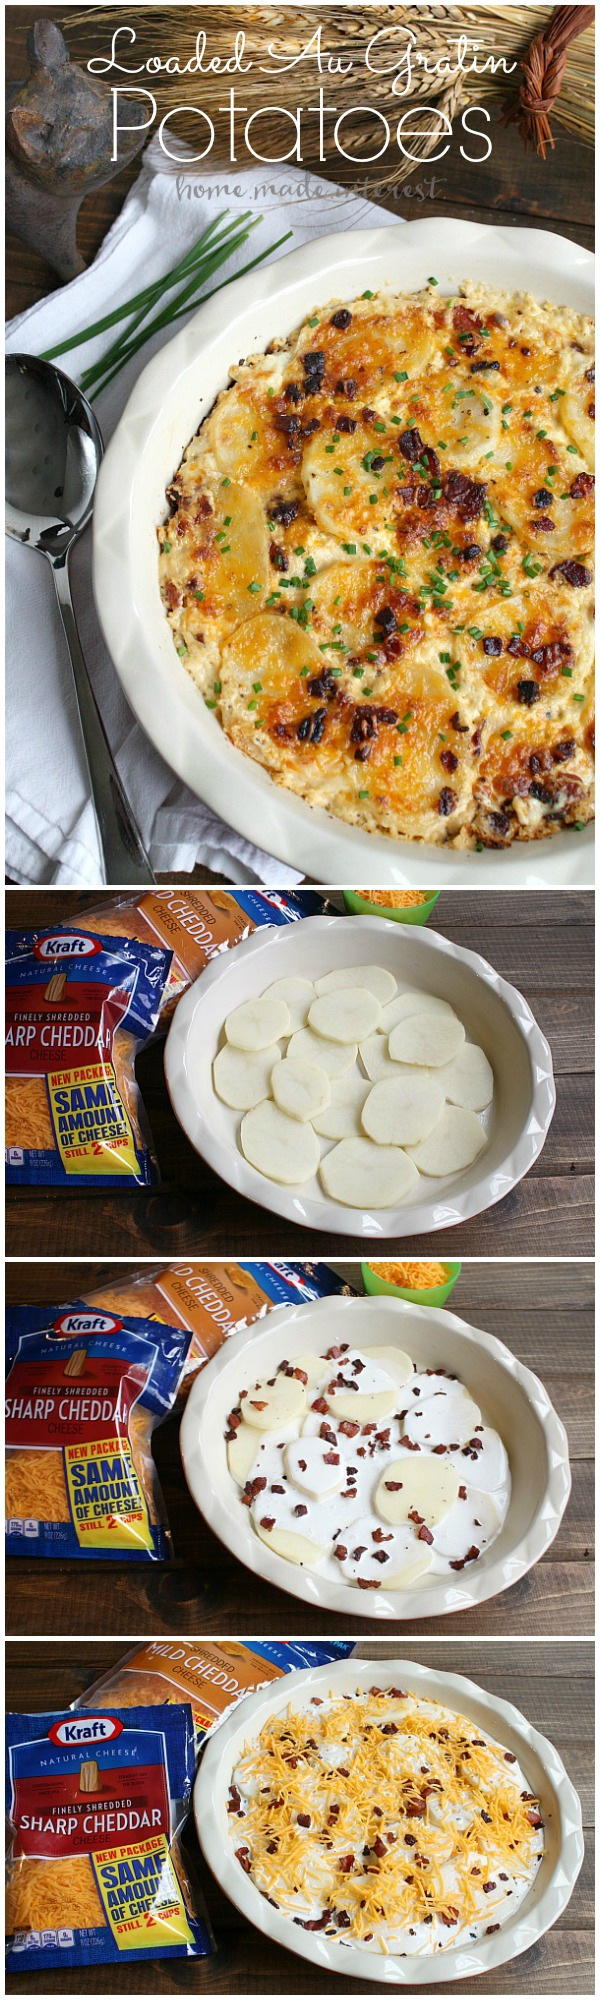 This Loaded Au Gratin Potatoes recipe is a delicious alternative to boring old baked potatoes. Loaded Au Gratin Potatoes are full of cheese, sour cream, and bacon.